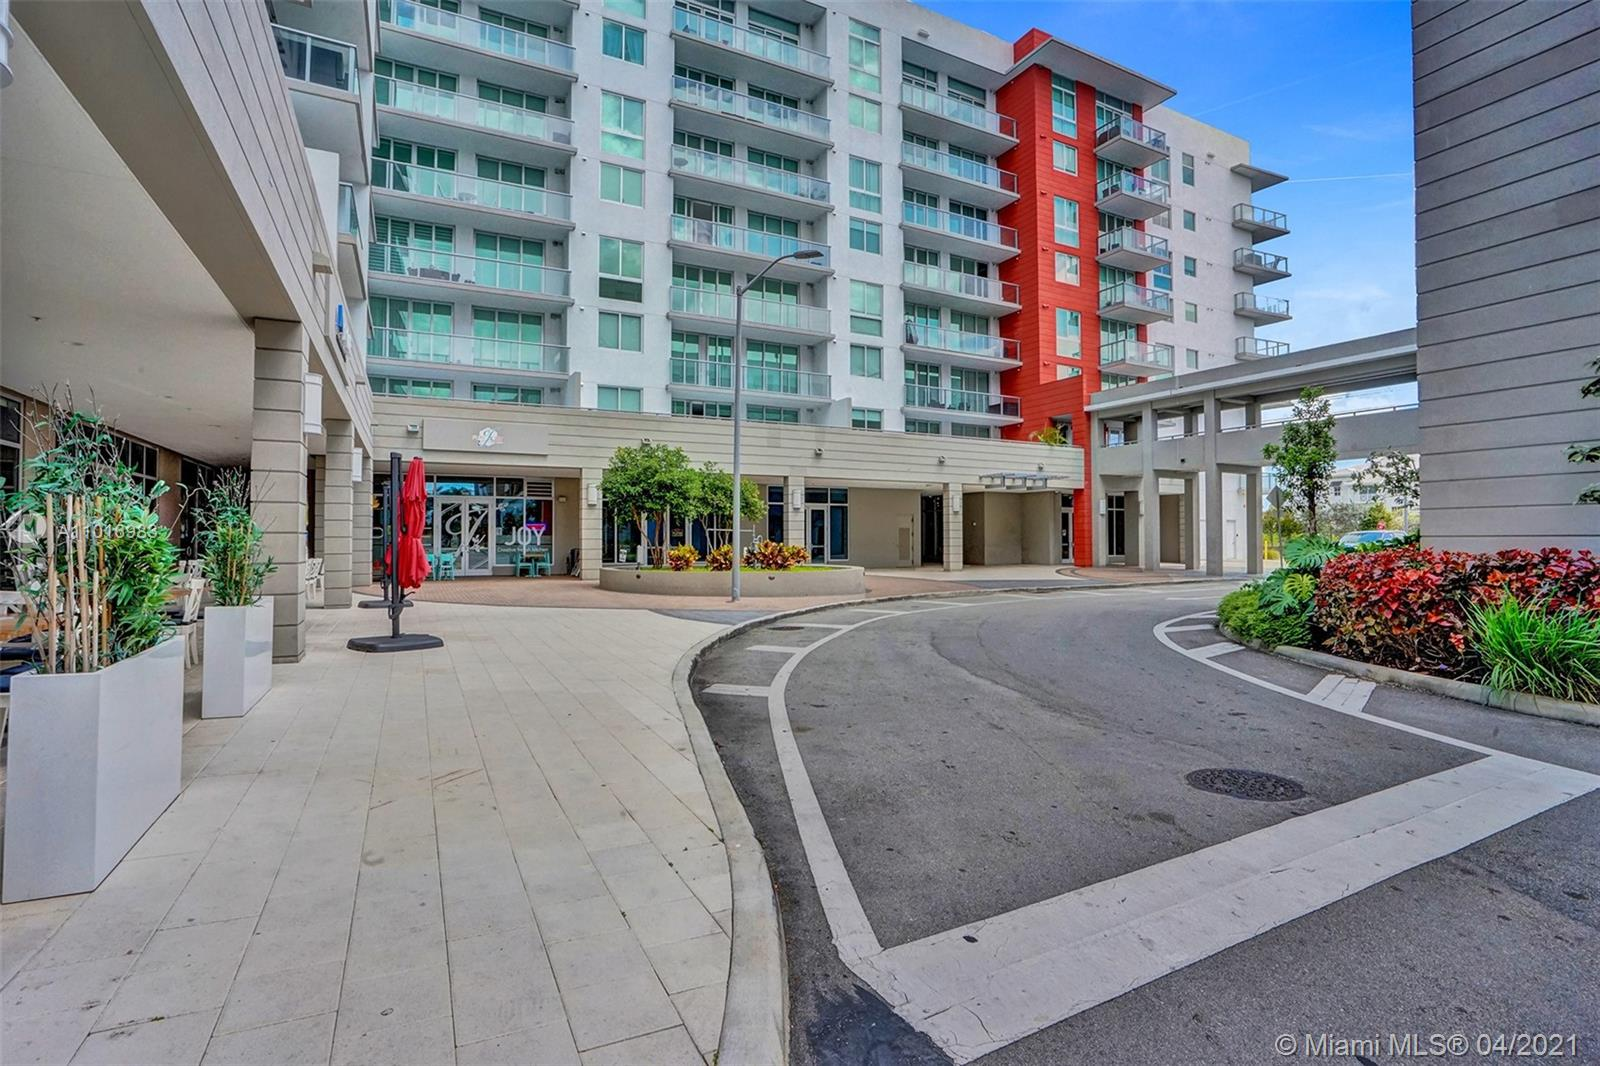 Midtown Doral - Building 2 #807 - 7751 NW 107th Ave #807, Miami, FL 33178